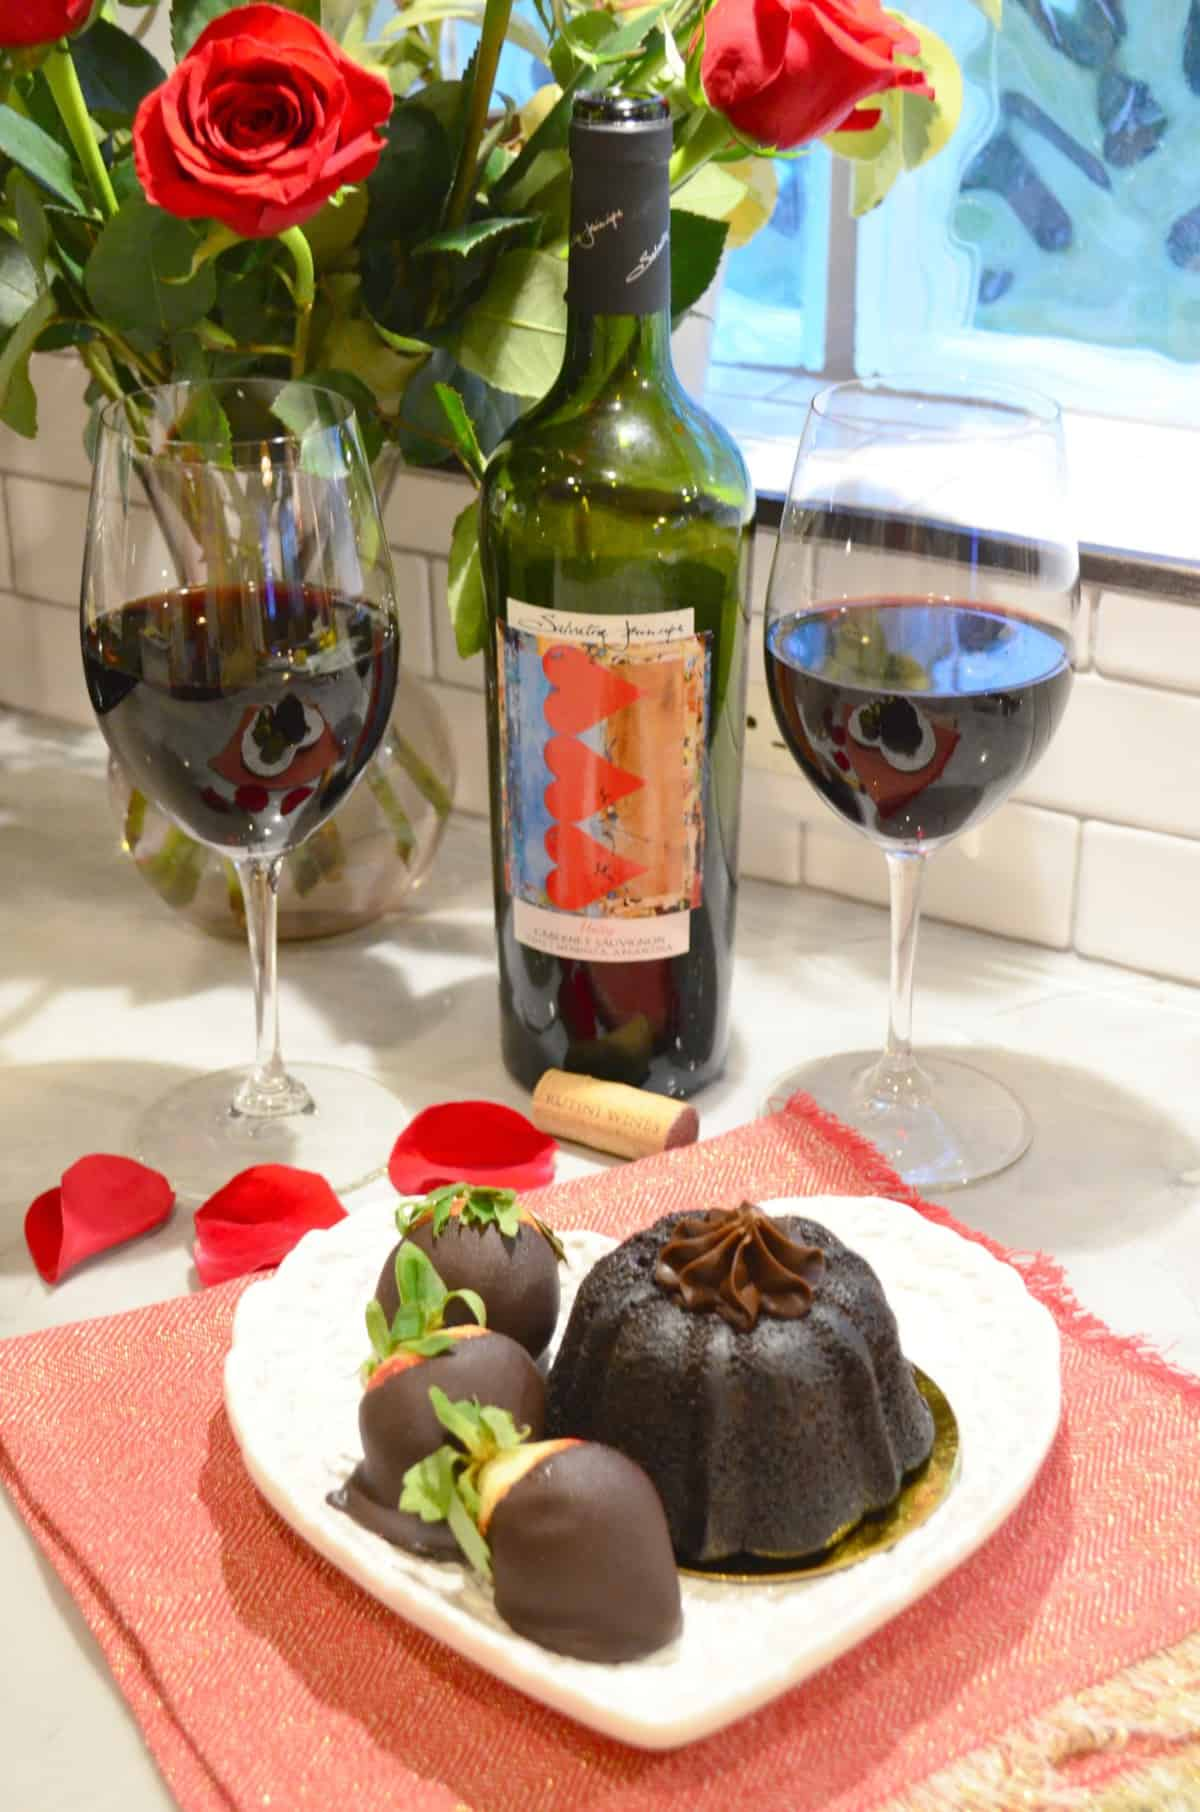 two glasses of wine  and bottle behind plated chocolate cake plated with chocolate dipped strawberries.